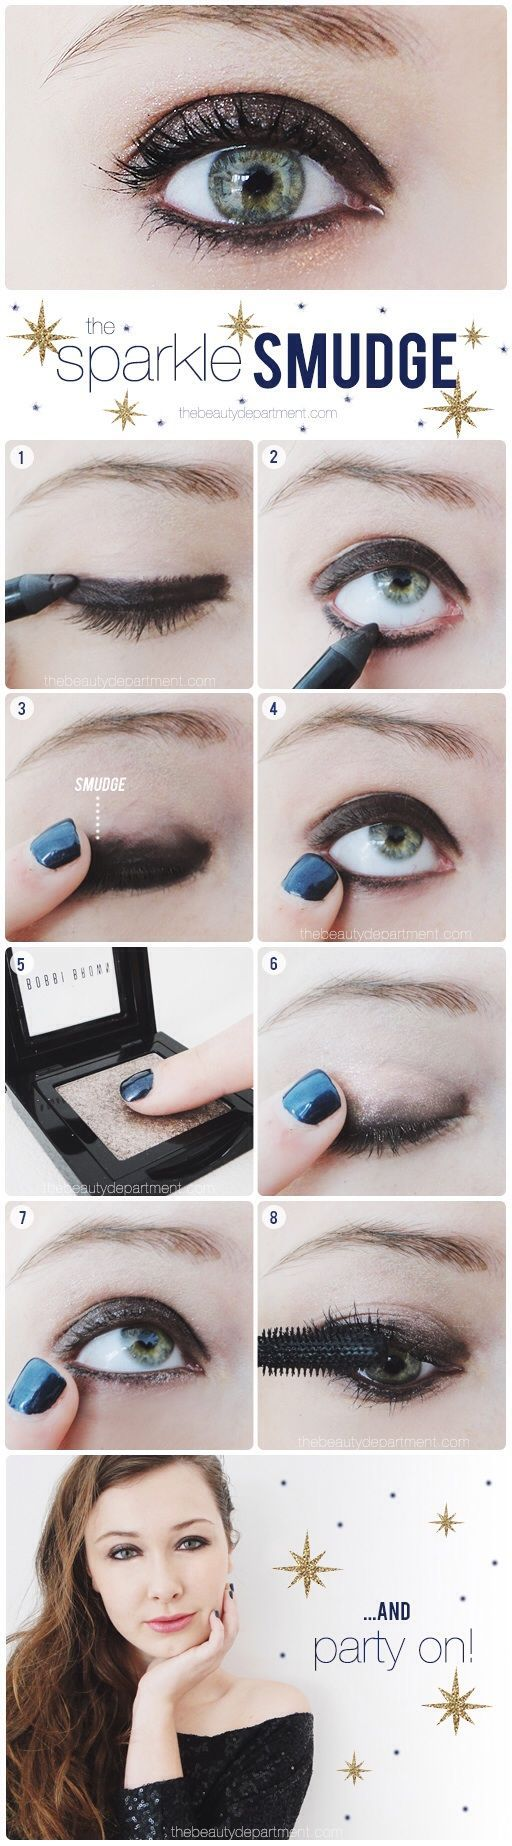 Sparkly Party Eye Makeup Tutorial